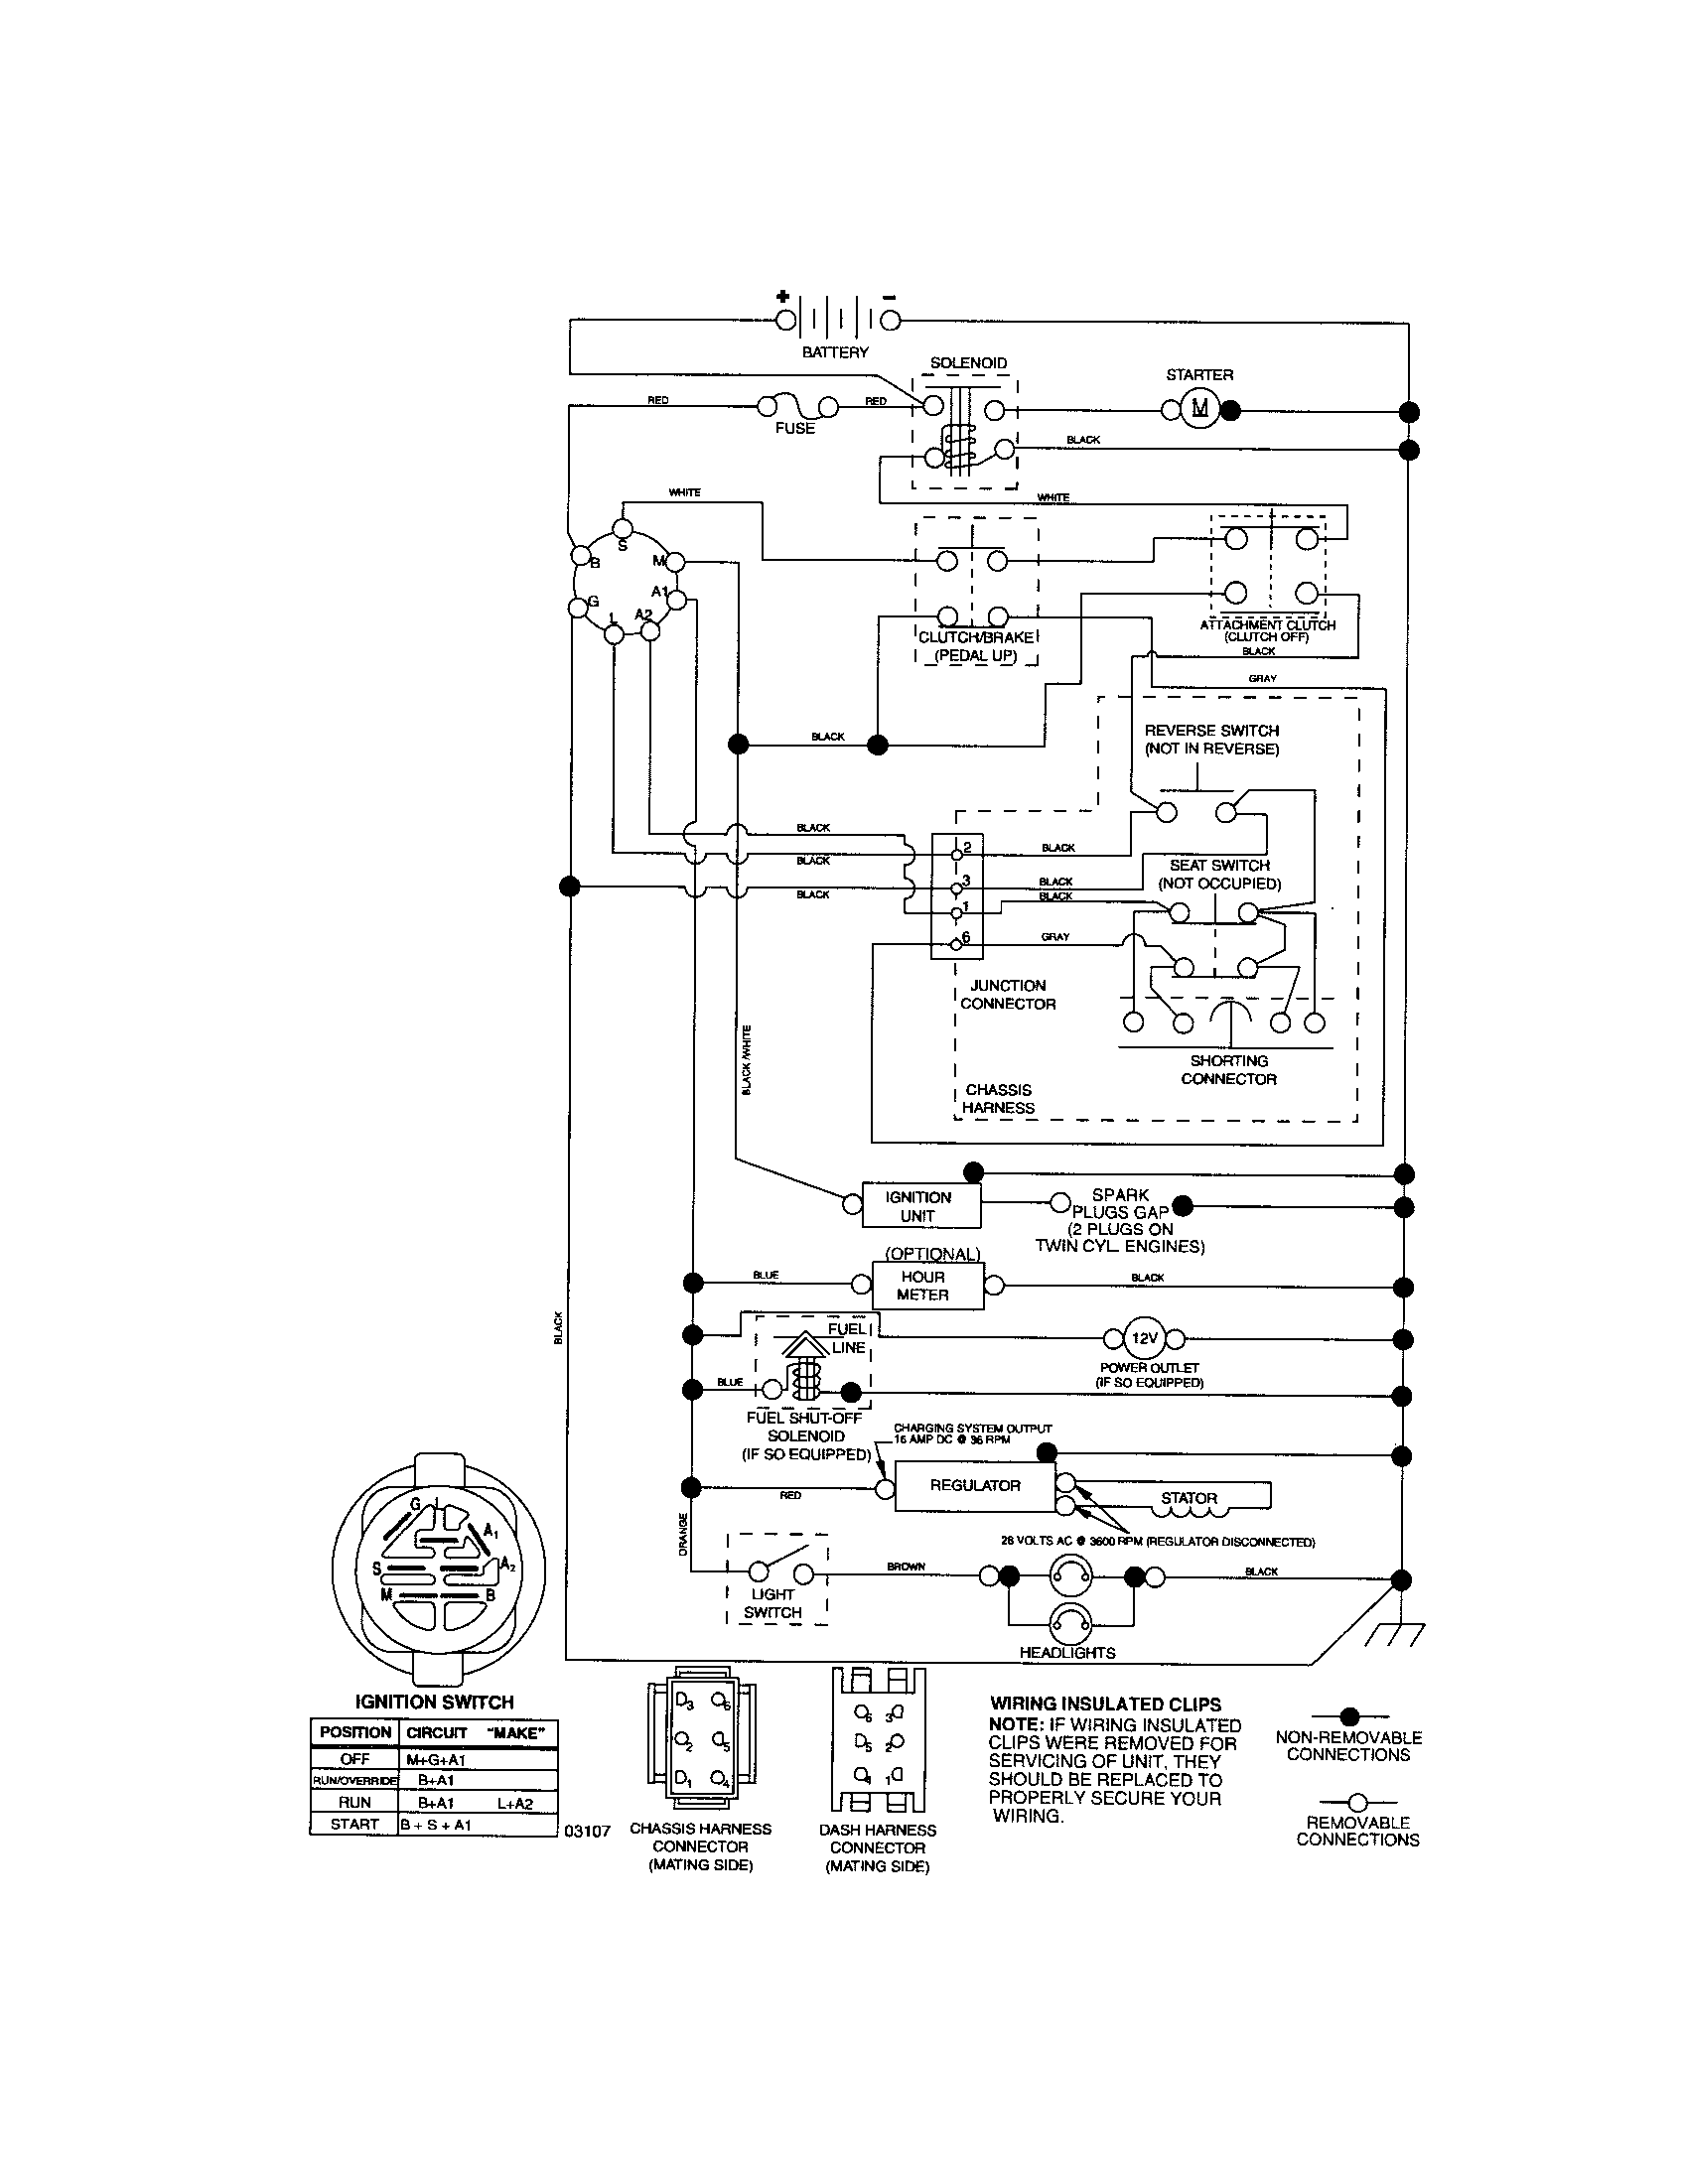 6af5f1447fd13c8443376822ddc1e105 craftsman riding mower electrical diagram wiring diagram Lay MO at bakdesigns.co